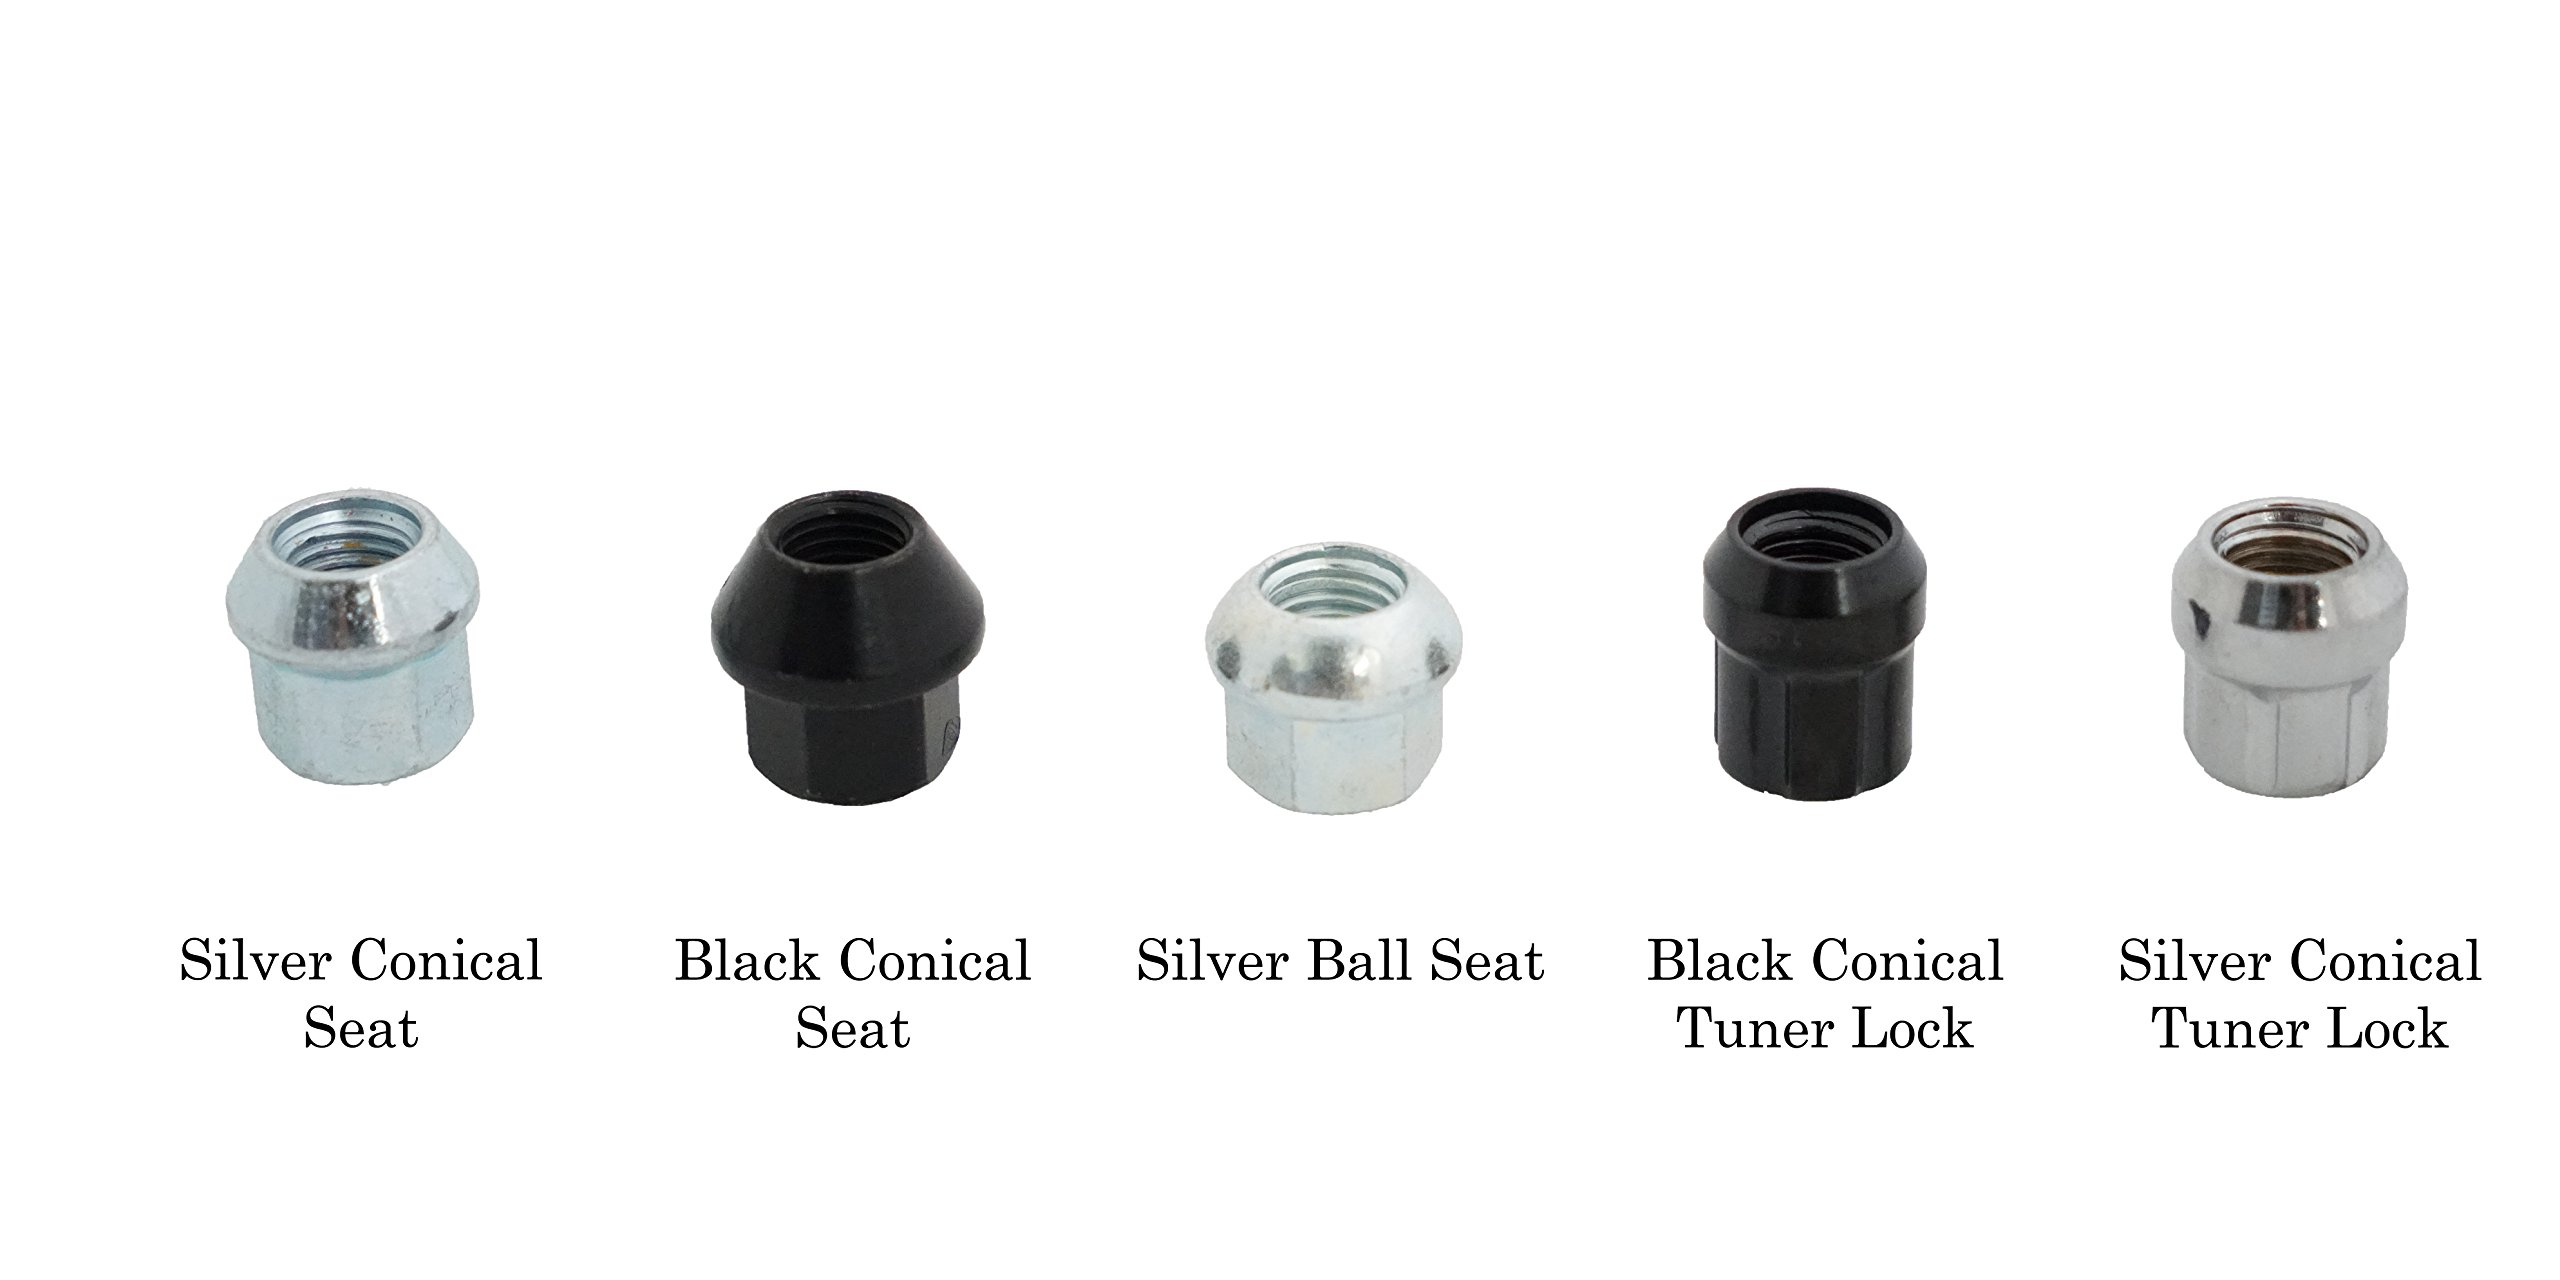 Motorsport Hardware (AUDI/VW/MERCEDES) 20-Piece Wheel Stud Adapter/Conversion 78mm Length (14x1.5 to 12x1.5) with Silver Ball Seat Nuts by Motorsport Hardware (Image #2)